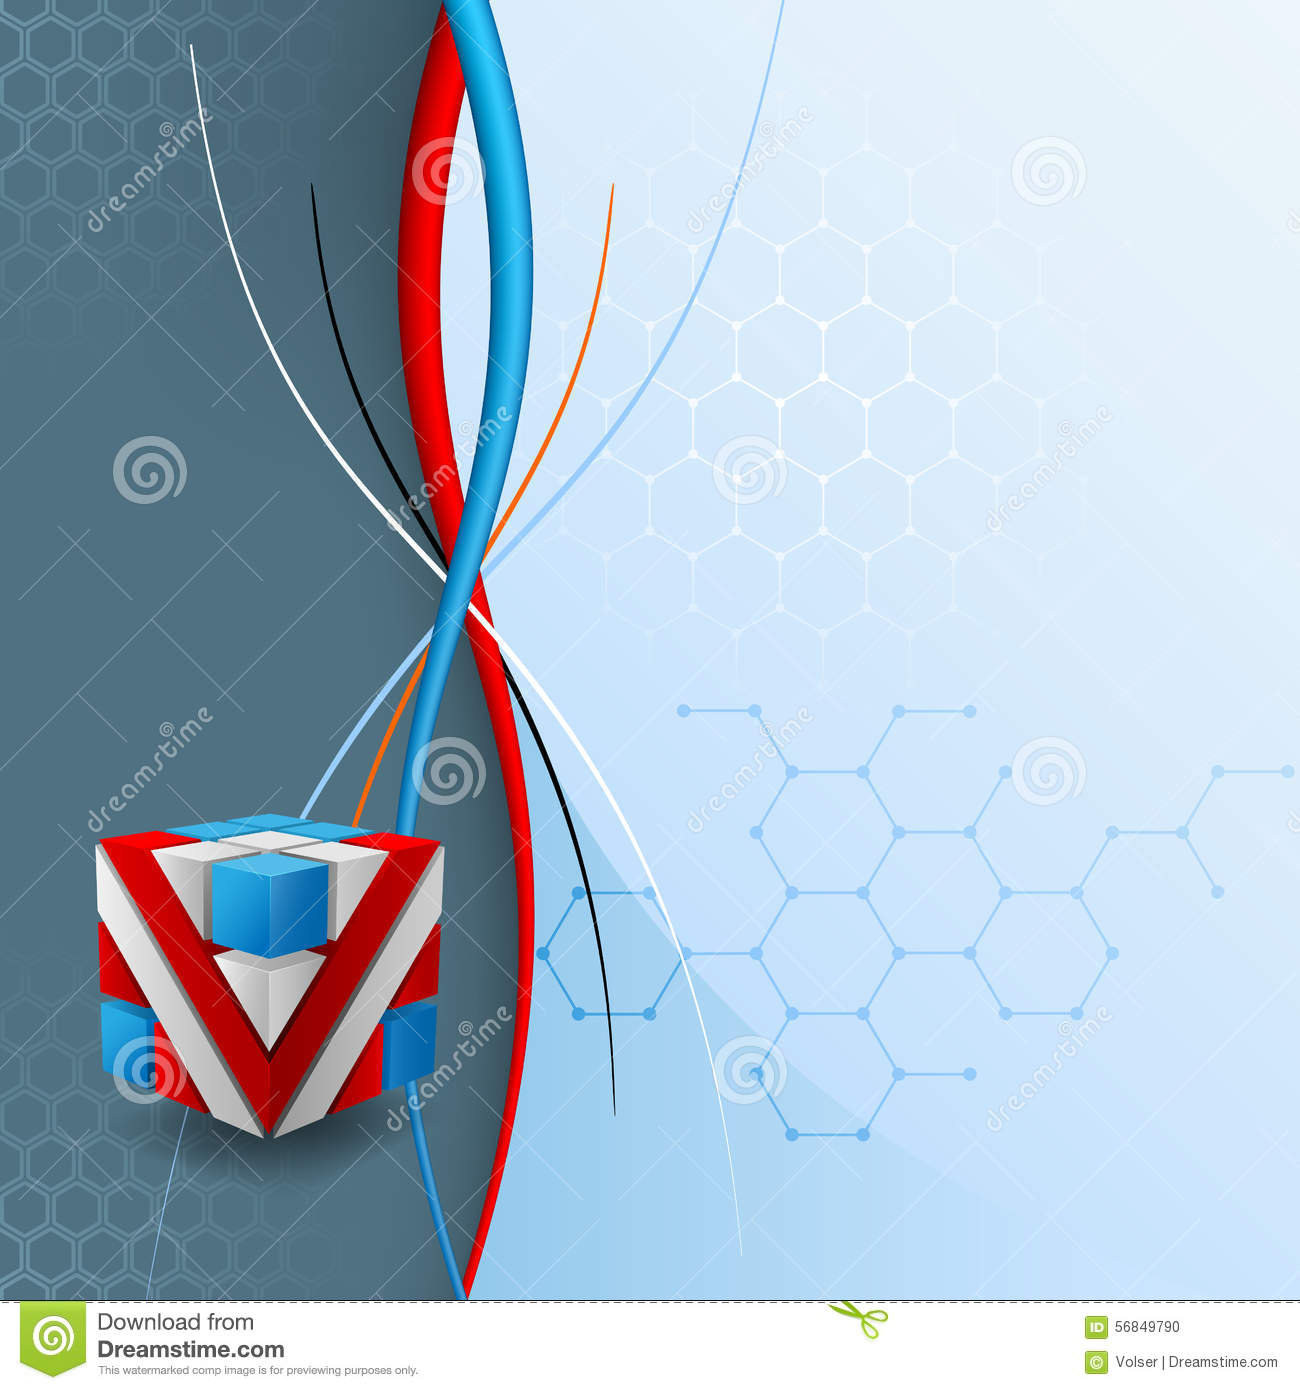 Design Template For Abstract Technology Background With Three